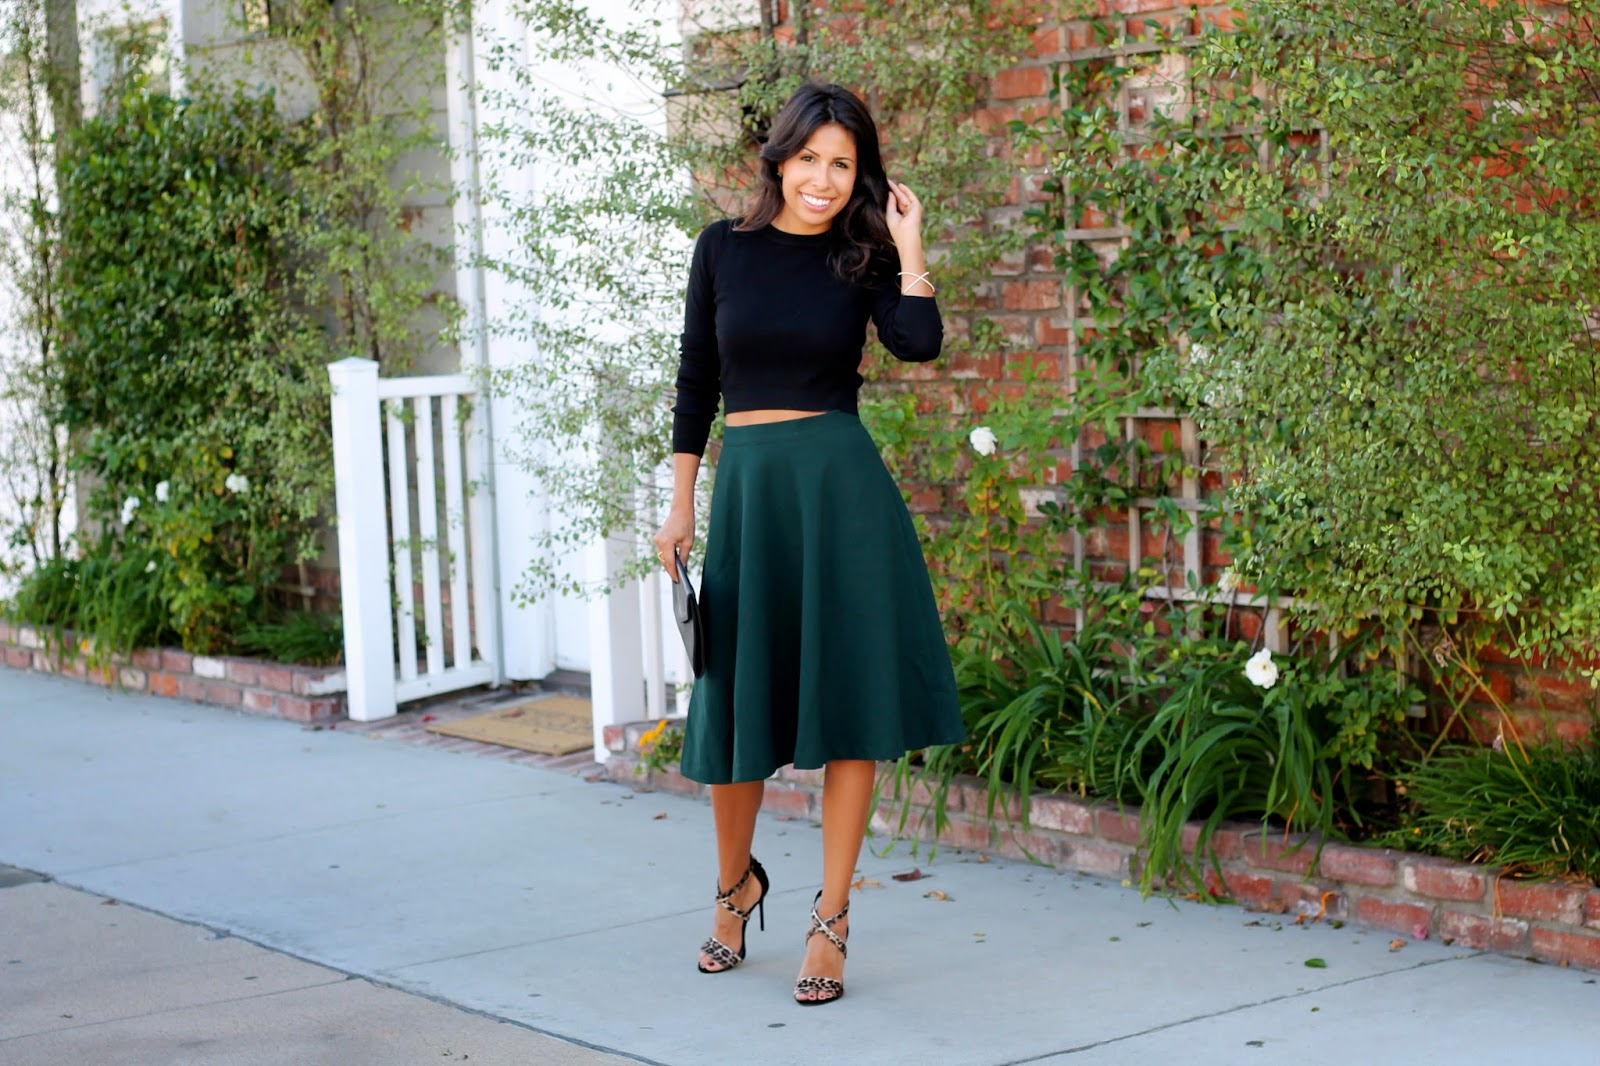 midi skirt outfit, how to style midi skirt, holiday party outfit, what to wear to holiday party